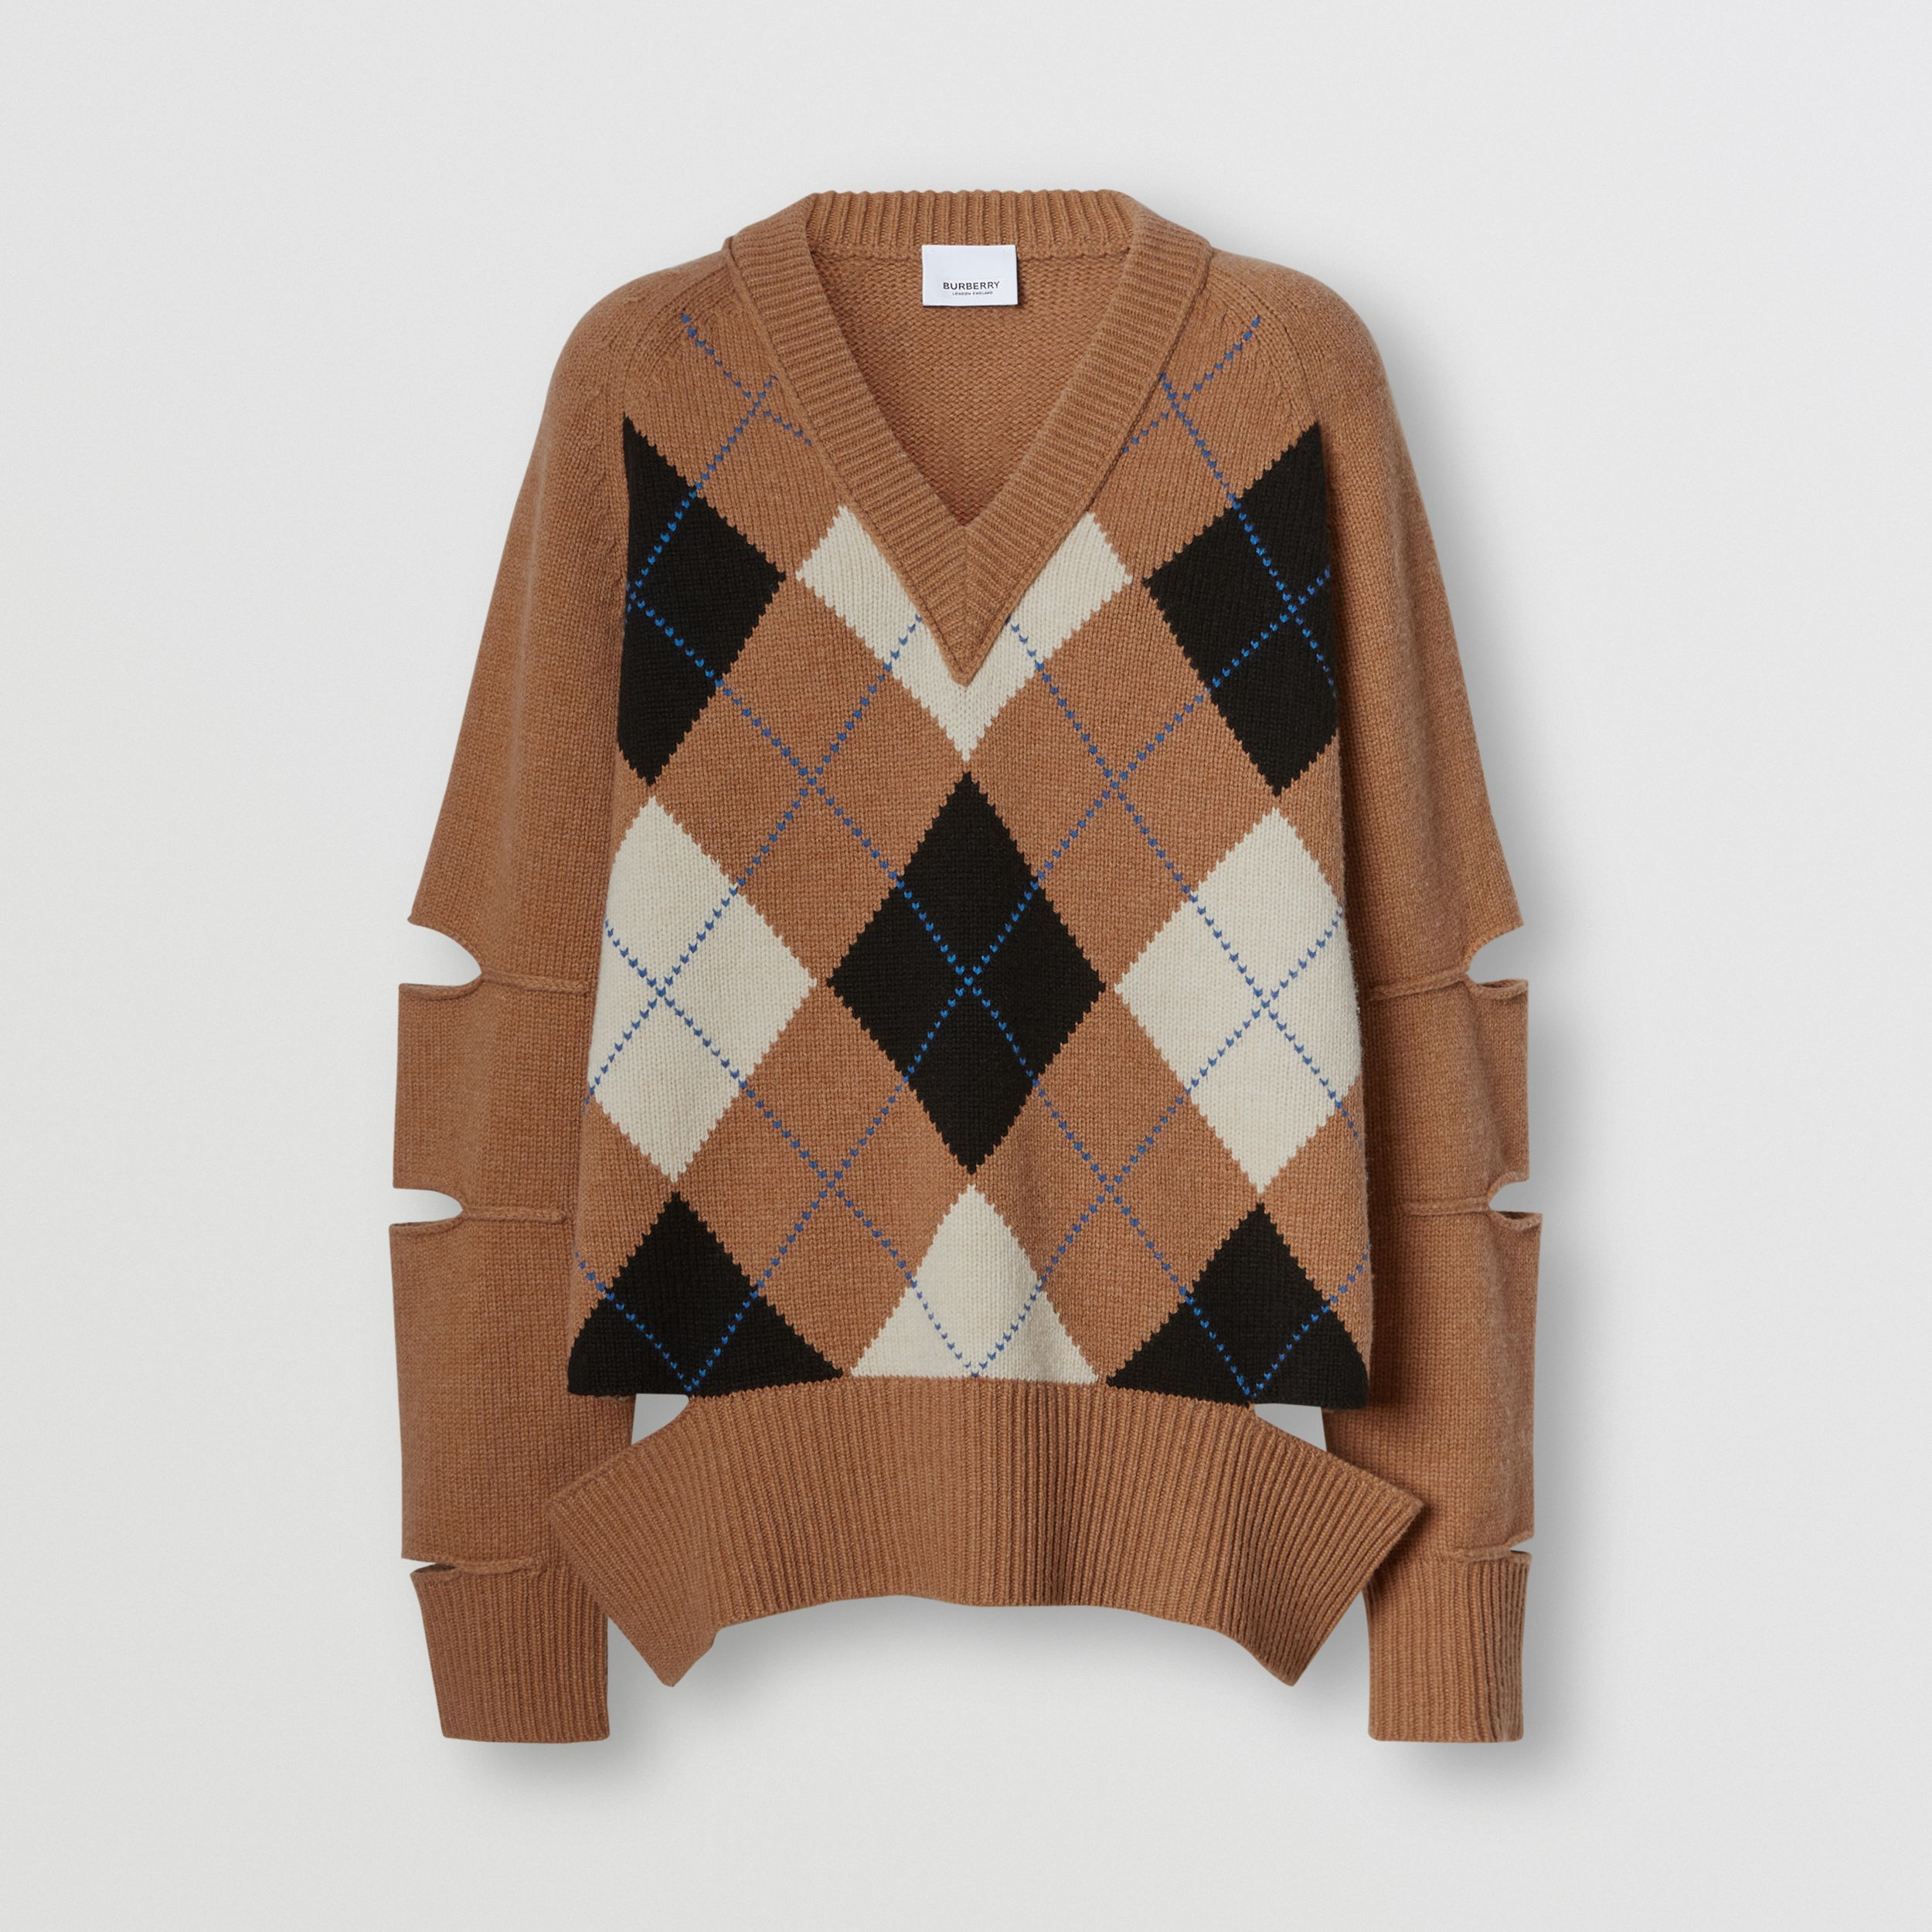 Cut-out Detail Argyle Intarsia Wool Cashmere Sweater in Camel - Women | Burberry Australia - 4